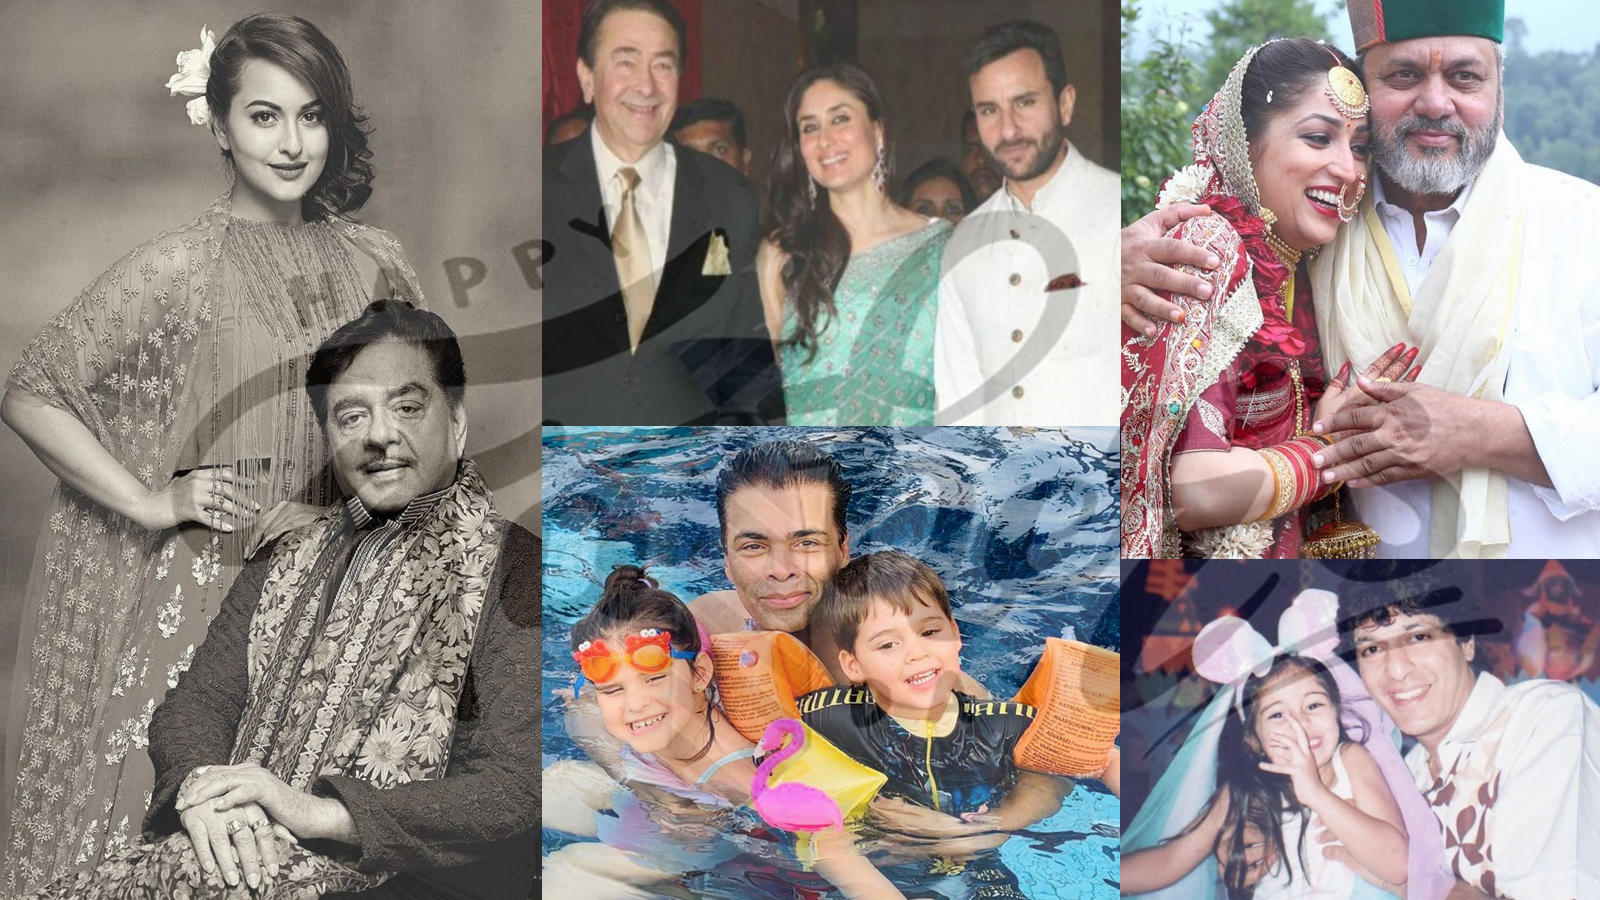 fathers-day-2021-from-kareena-kapoor-khan-to-karan-johar-ayushmann-khurrana-to-ananya-panday-celebs-honour-their-dads-with-special-posts